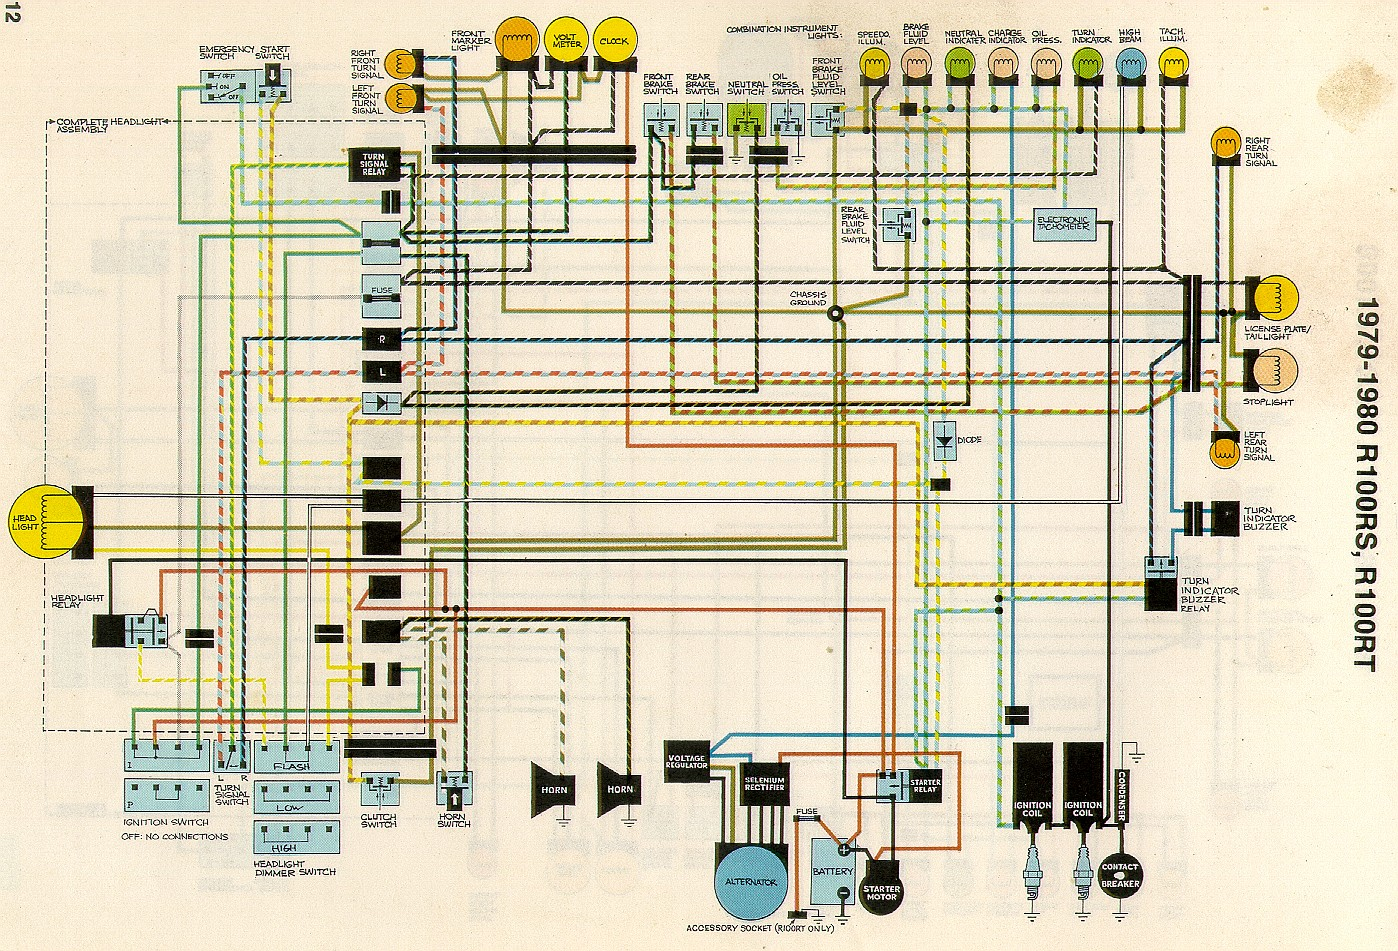 79rs 5 united articles wiring diagrams bmw r100rs gauge wiring diagram at eliteediting.co